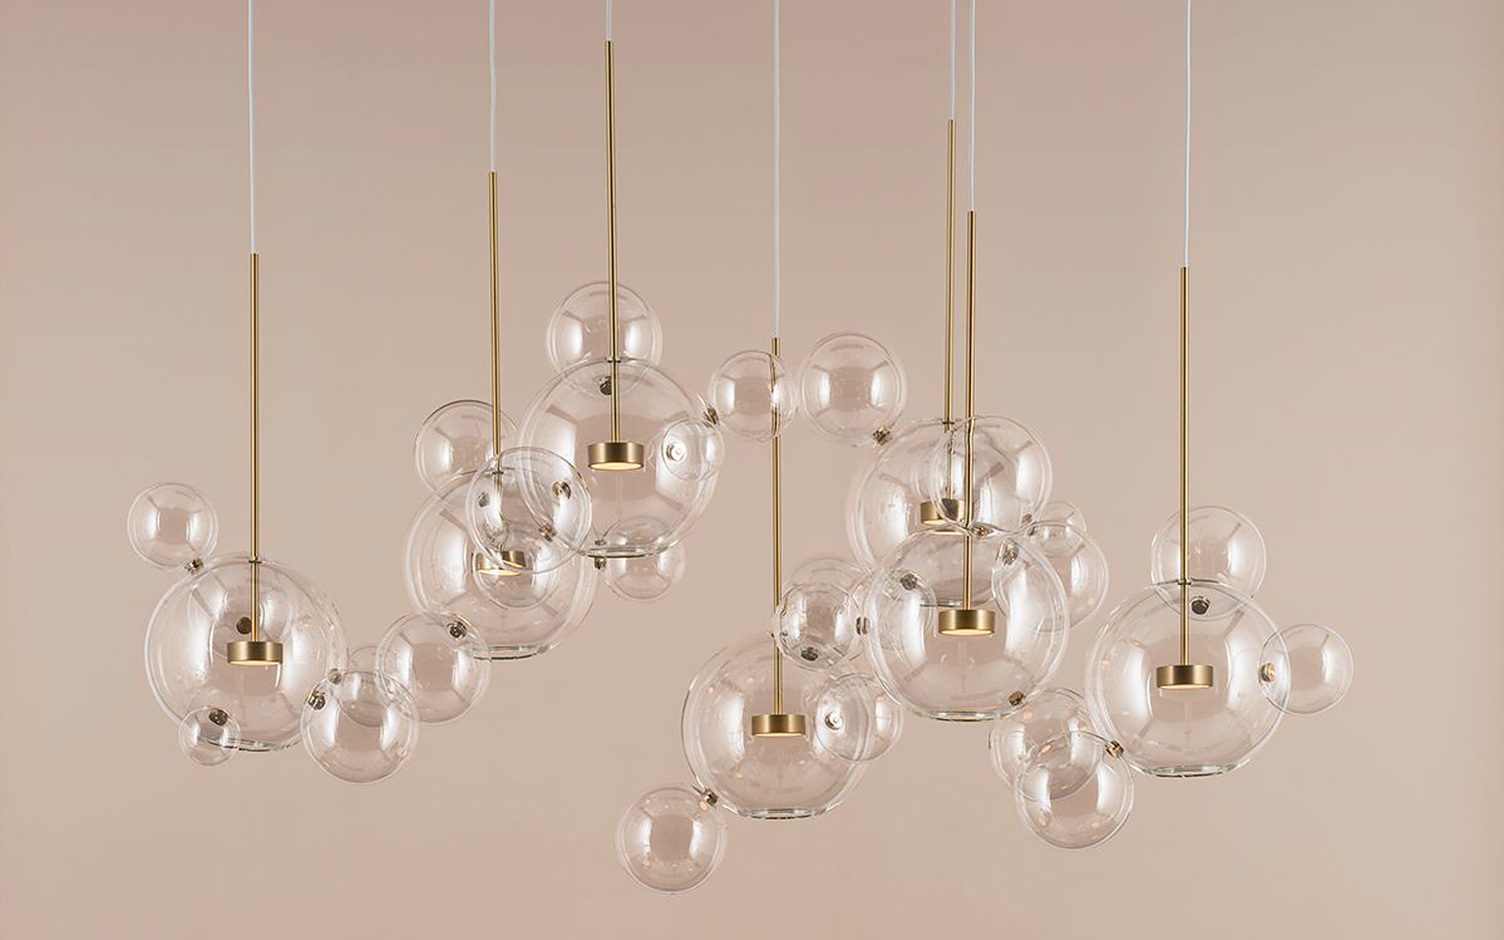 Pendant Lighting catalogue image